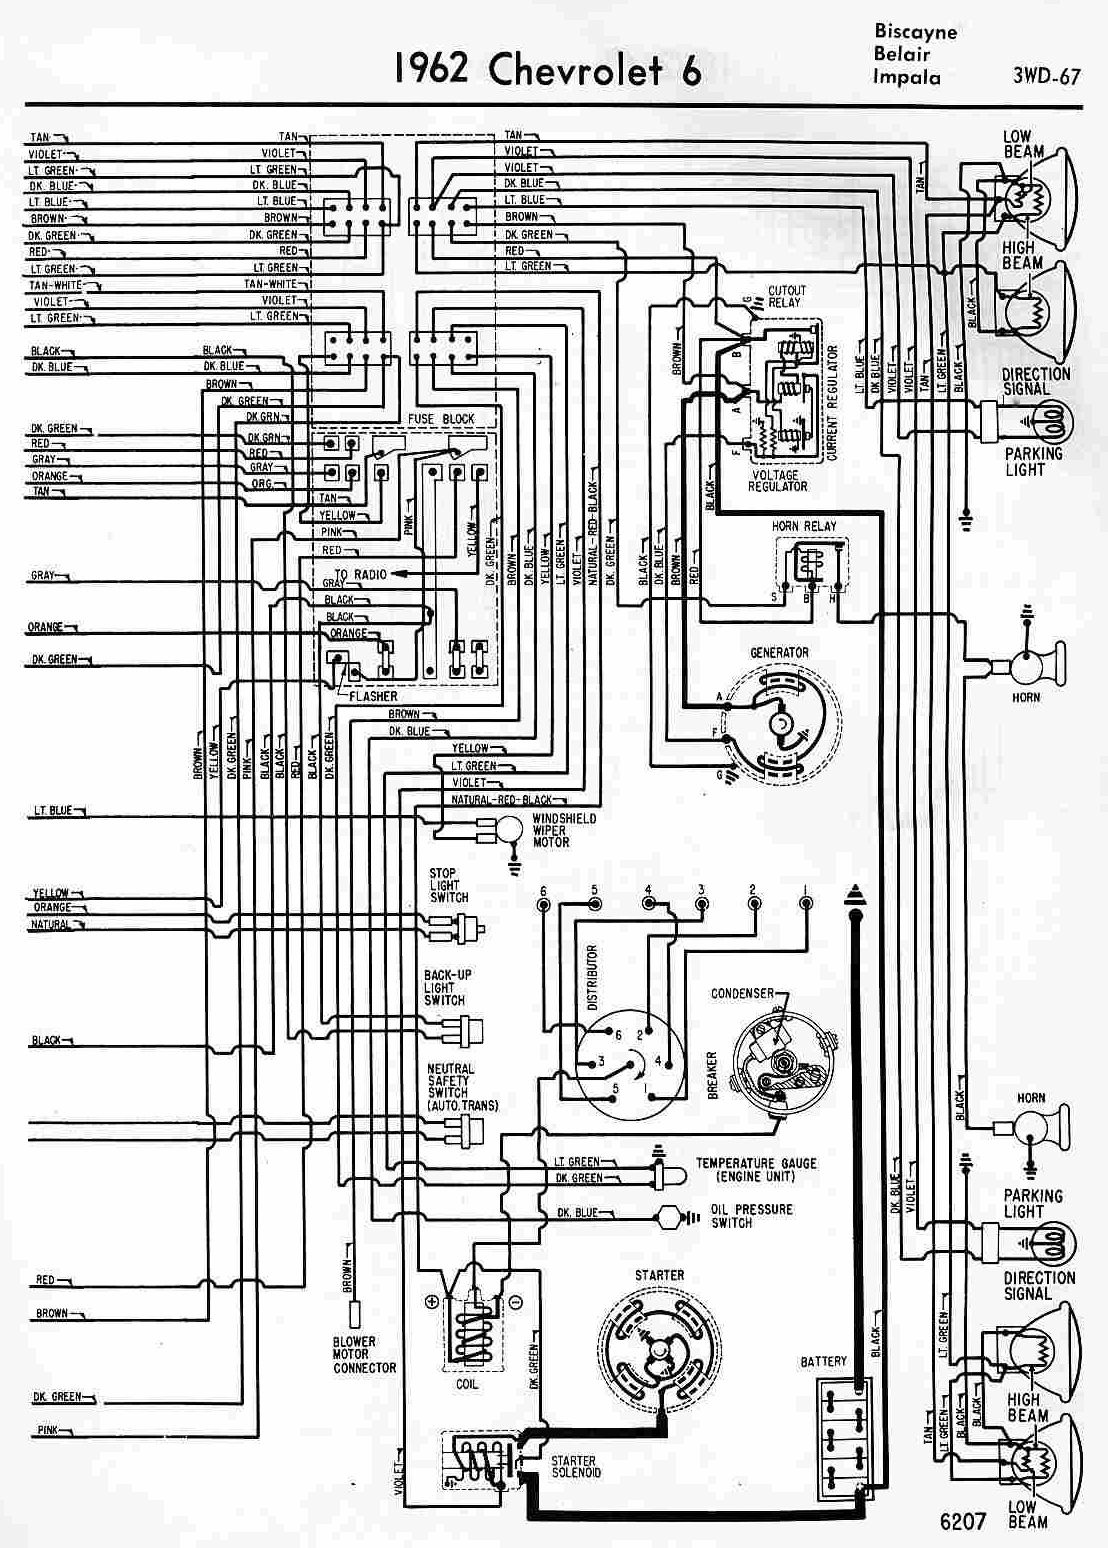 Pleasing Wiring Diagram 2009 Chevy Impala Ltz Basic Electronics Wiring Diagram Wiring Digital Resources Funapmognl